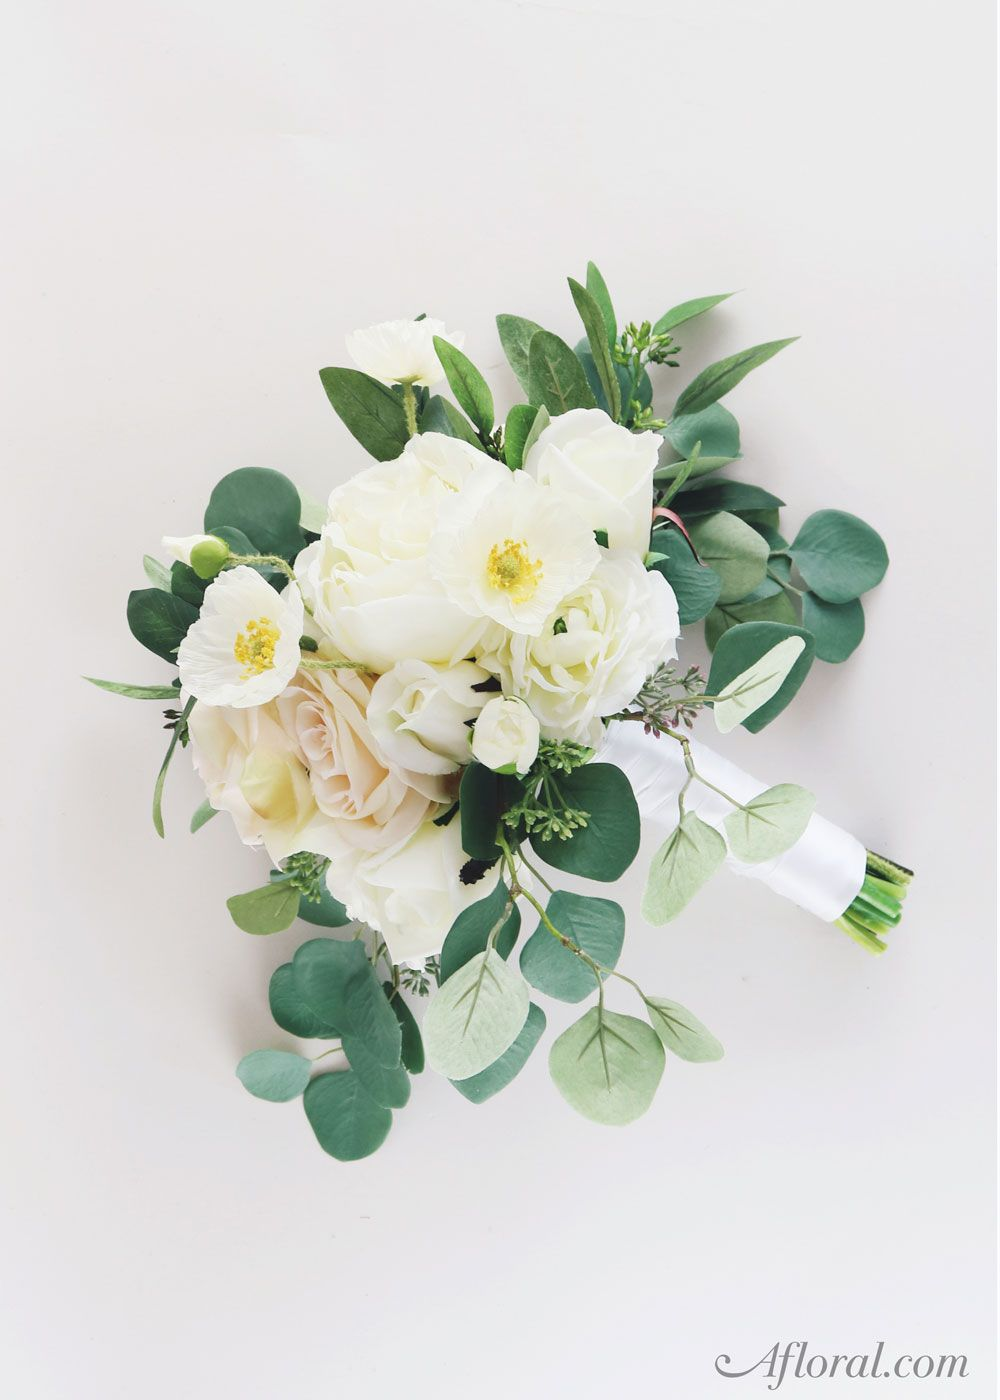 Silk flower wedding bouquet make your own bridal bouquet with fake silk flower wedding bouquet make your own bridal bouquet with fake flowers from afloral affordable beautiful long lasting silk flowers are the izmirmasajfo